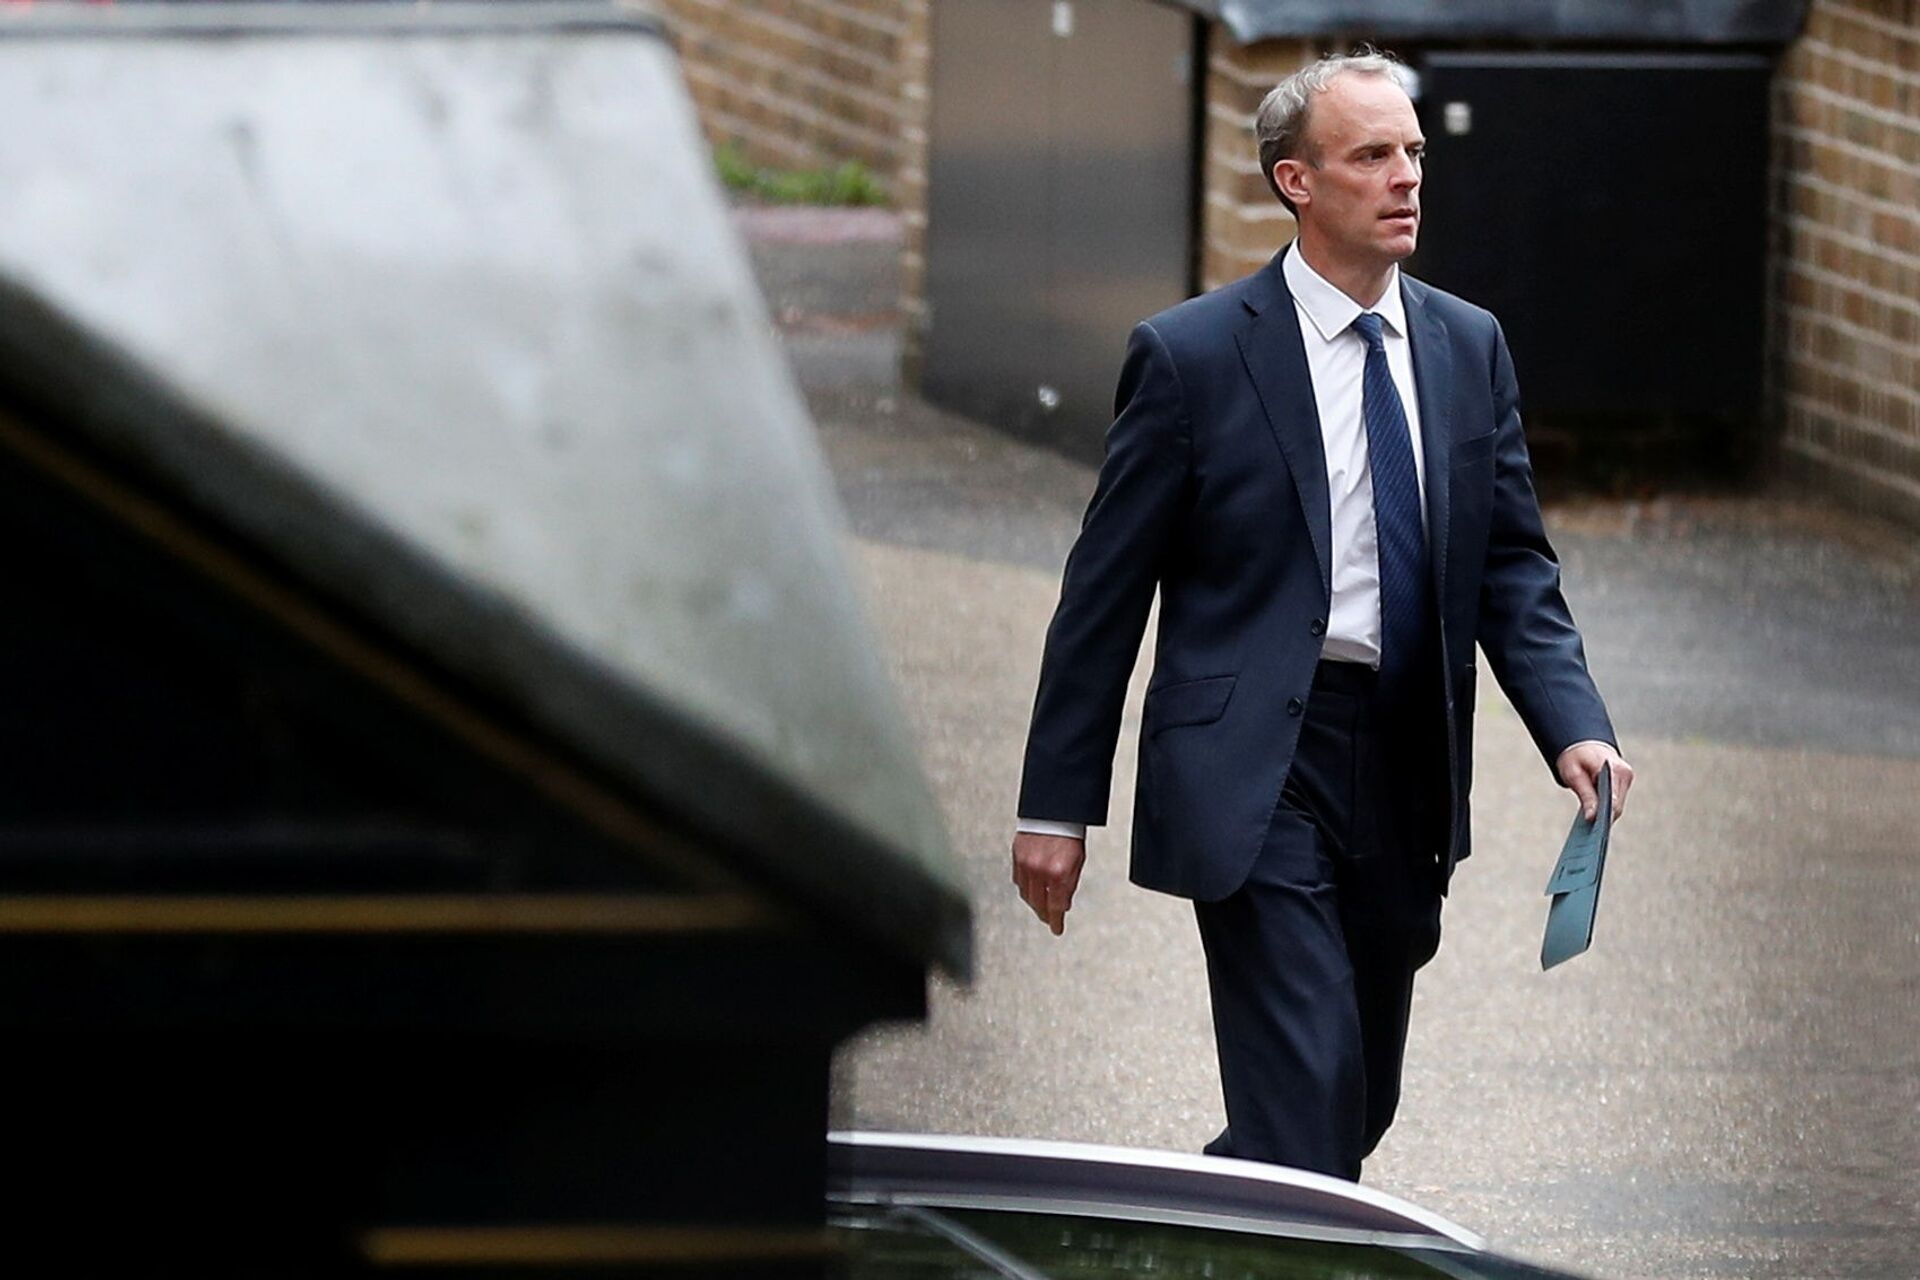 Britain's Foreign Secretary Dominic Raab walks outside the Foreign, Commonwealth and Development Office in London, Britain, August 20, 2021 - Sputnik International, 1920, 07.09.2021